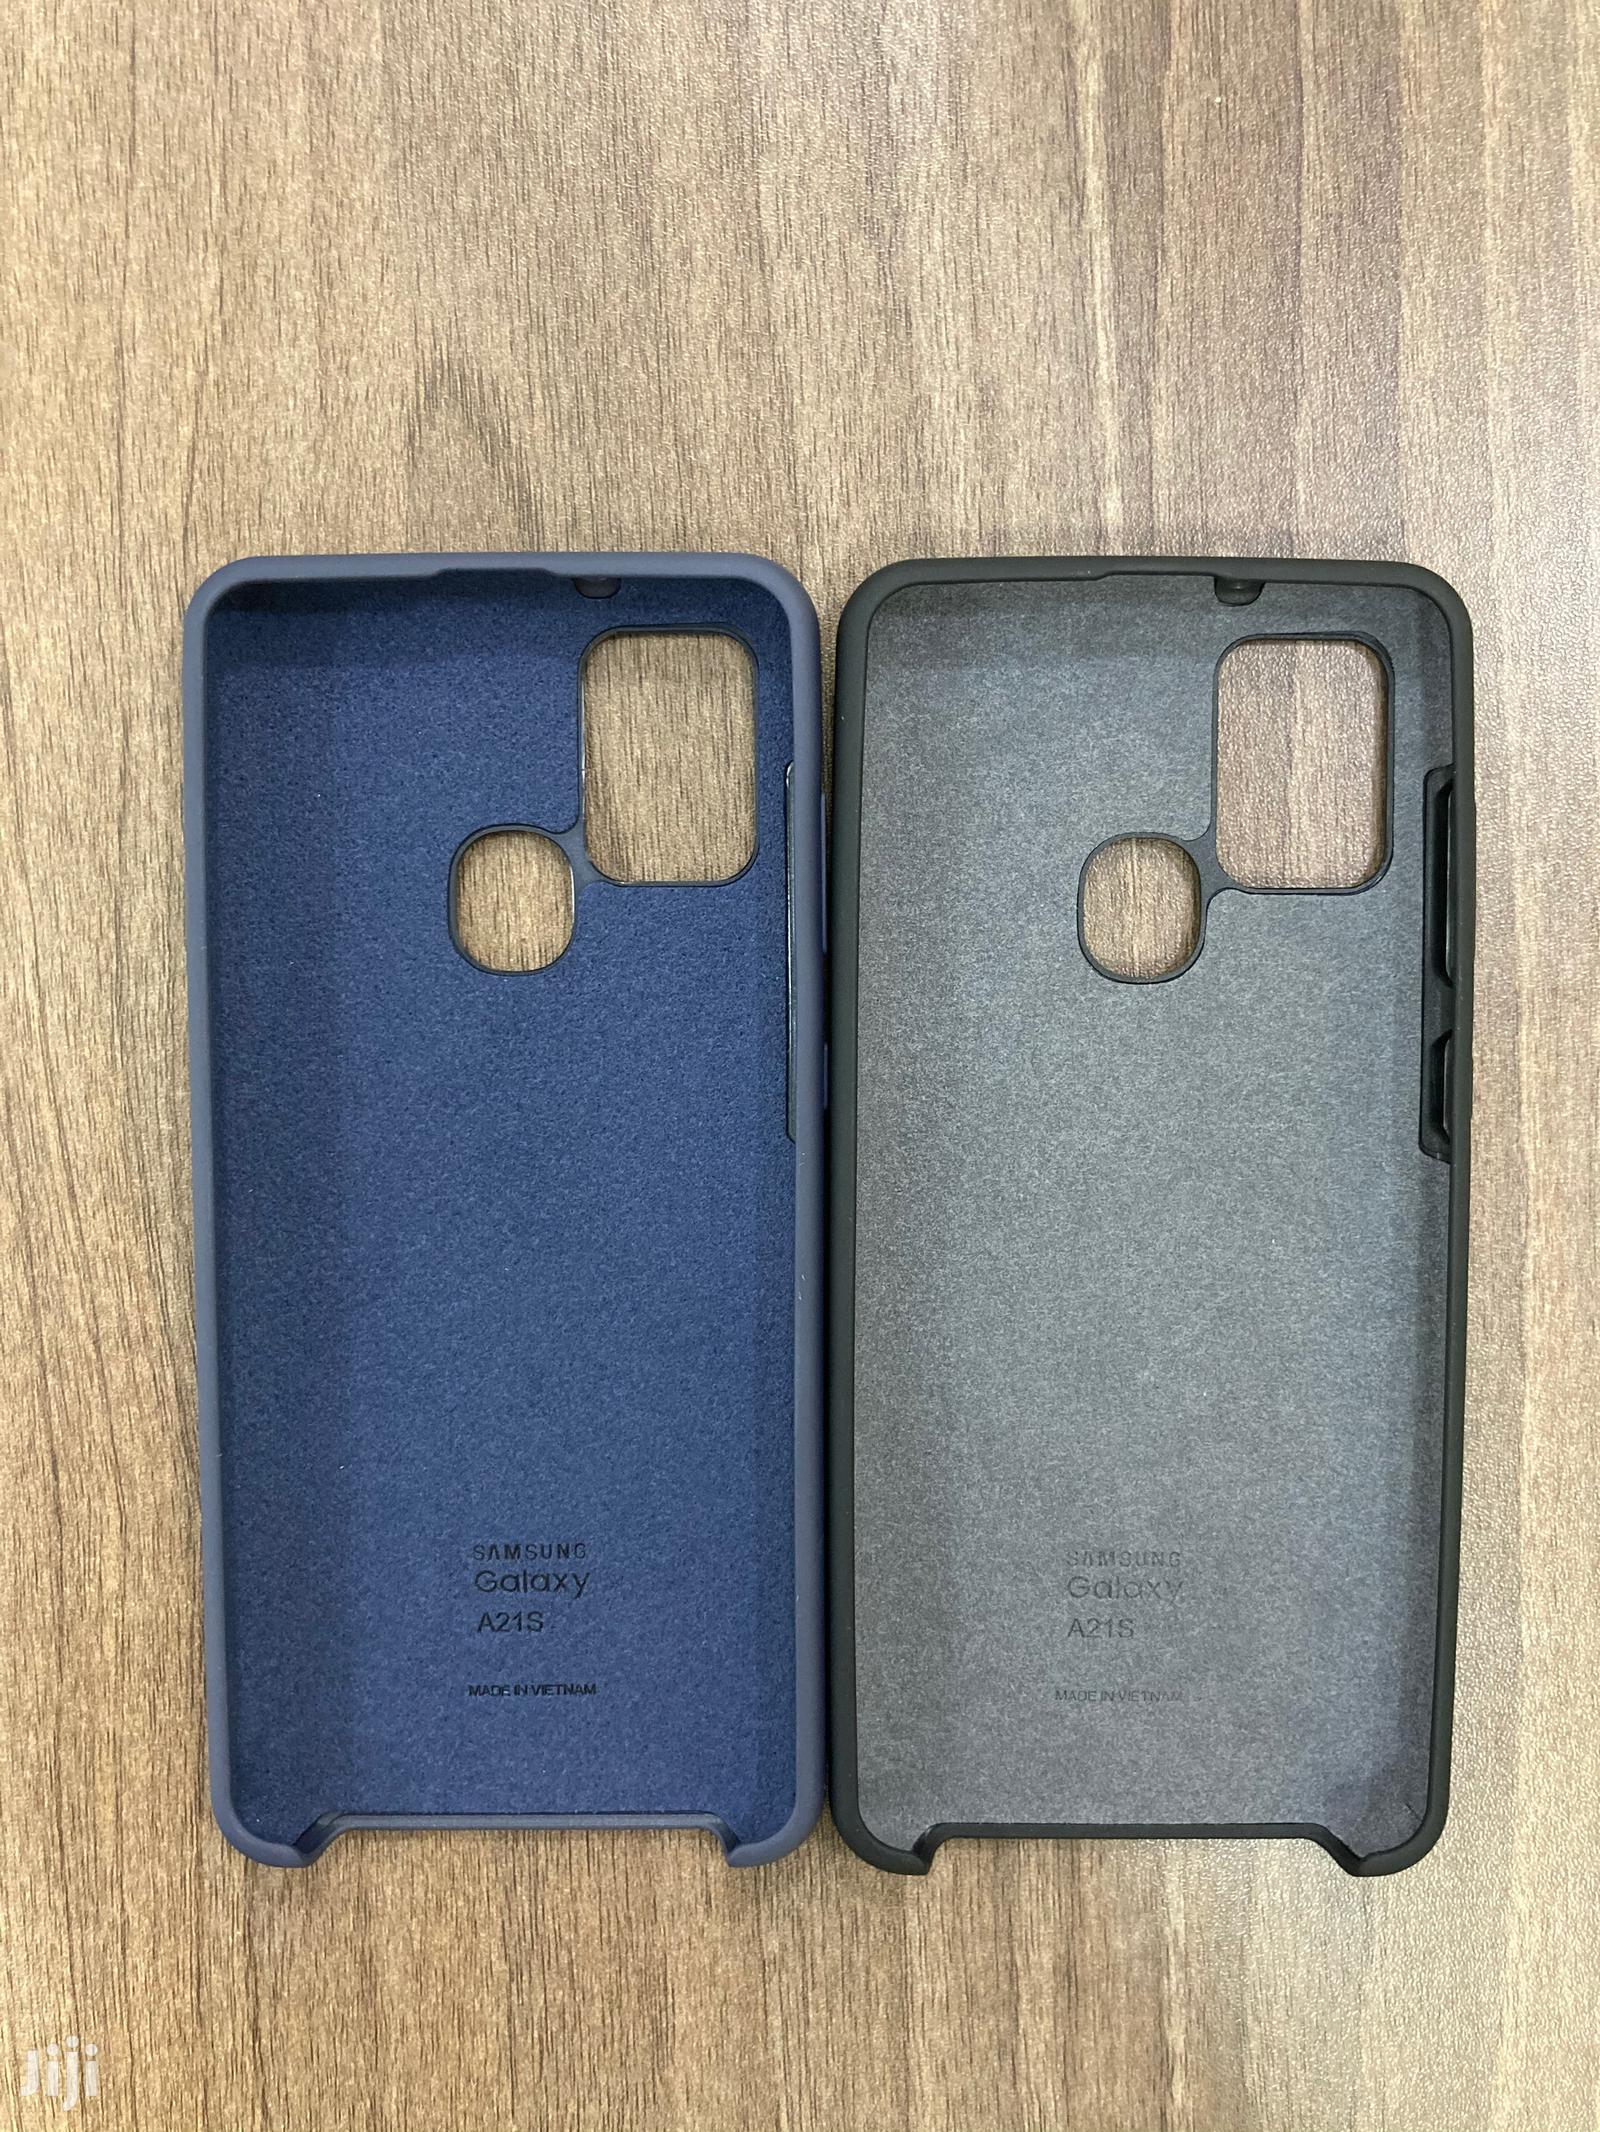 Samsung Galaxy A21s Silicone Cases | Accessories for Mobile Phones & Tablets for sale in Nairobi Central, Nairobi, Kenya